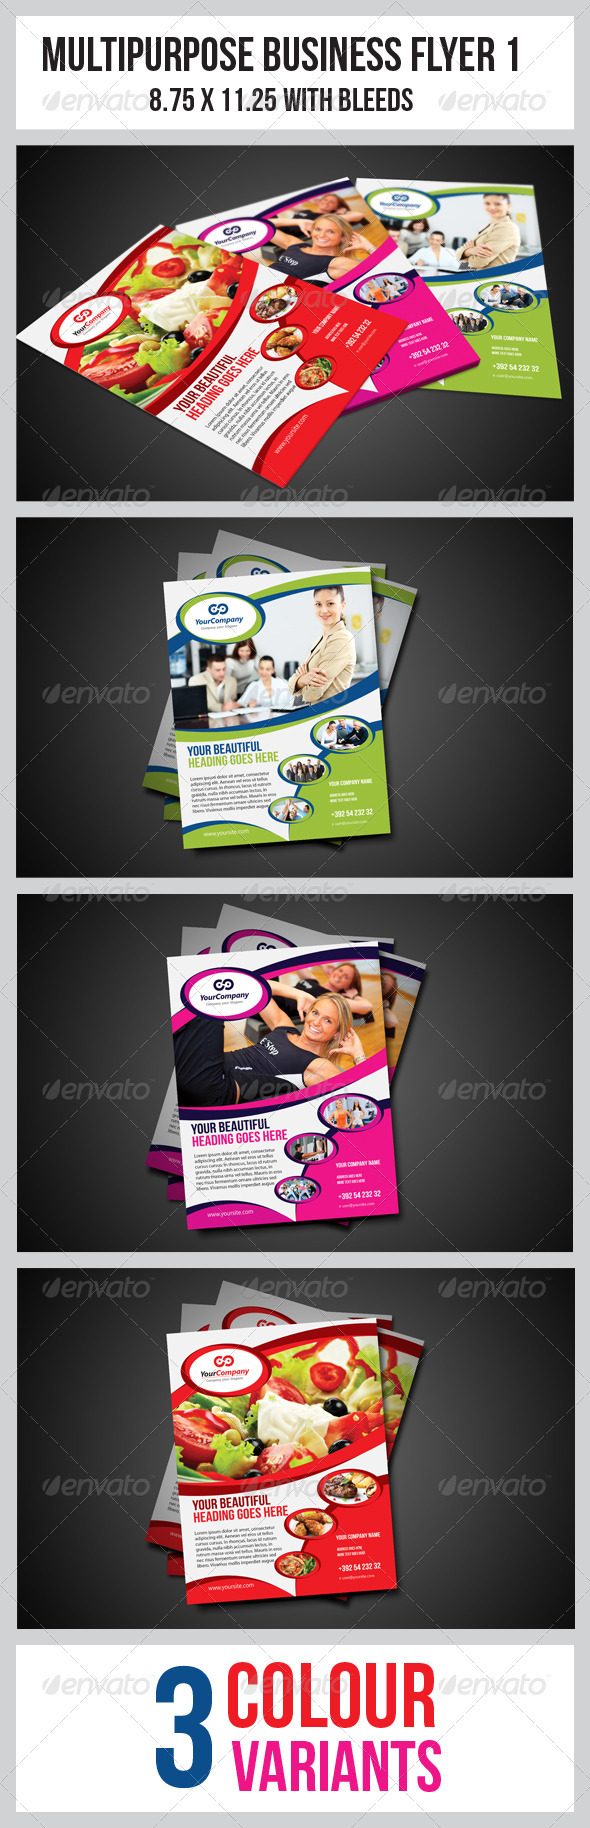 Multipurpose Business Flyer 1 - Corporate Flyers